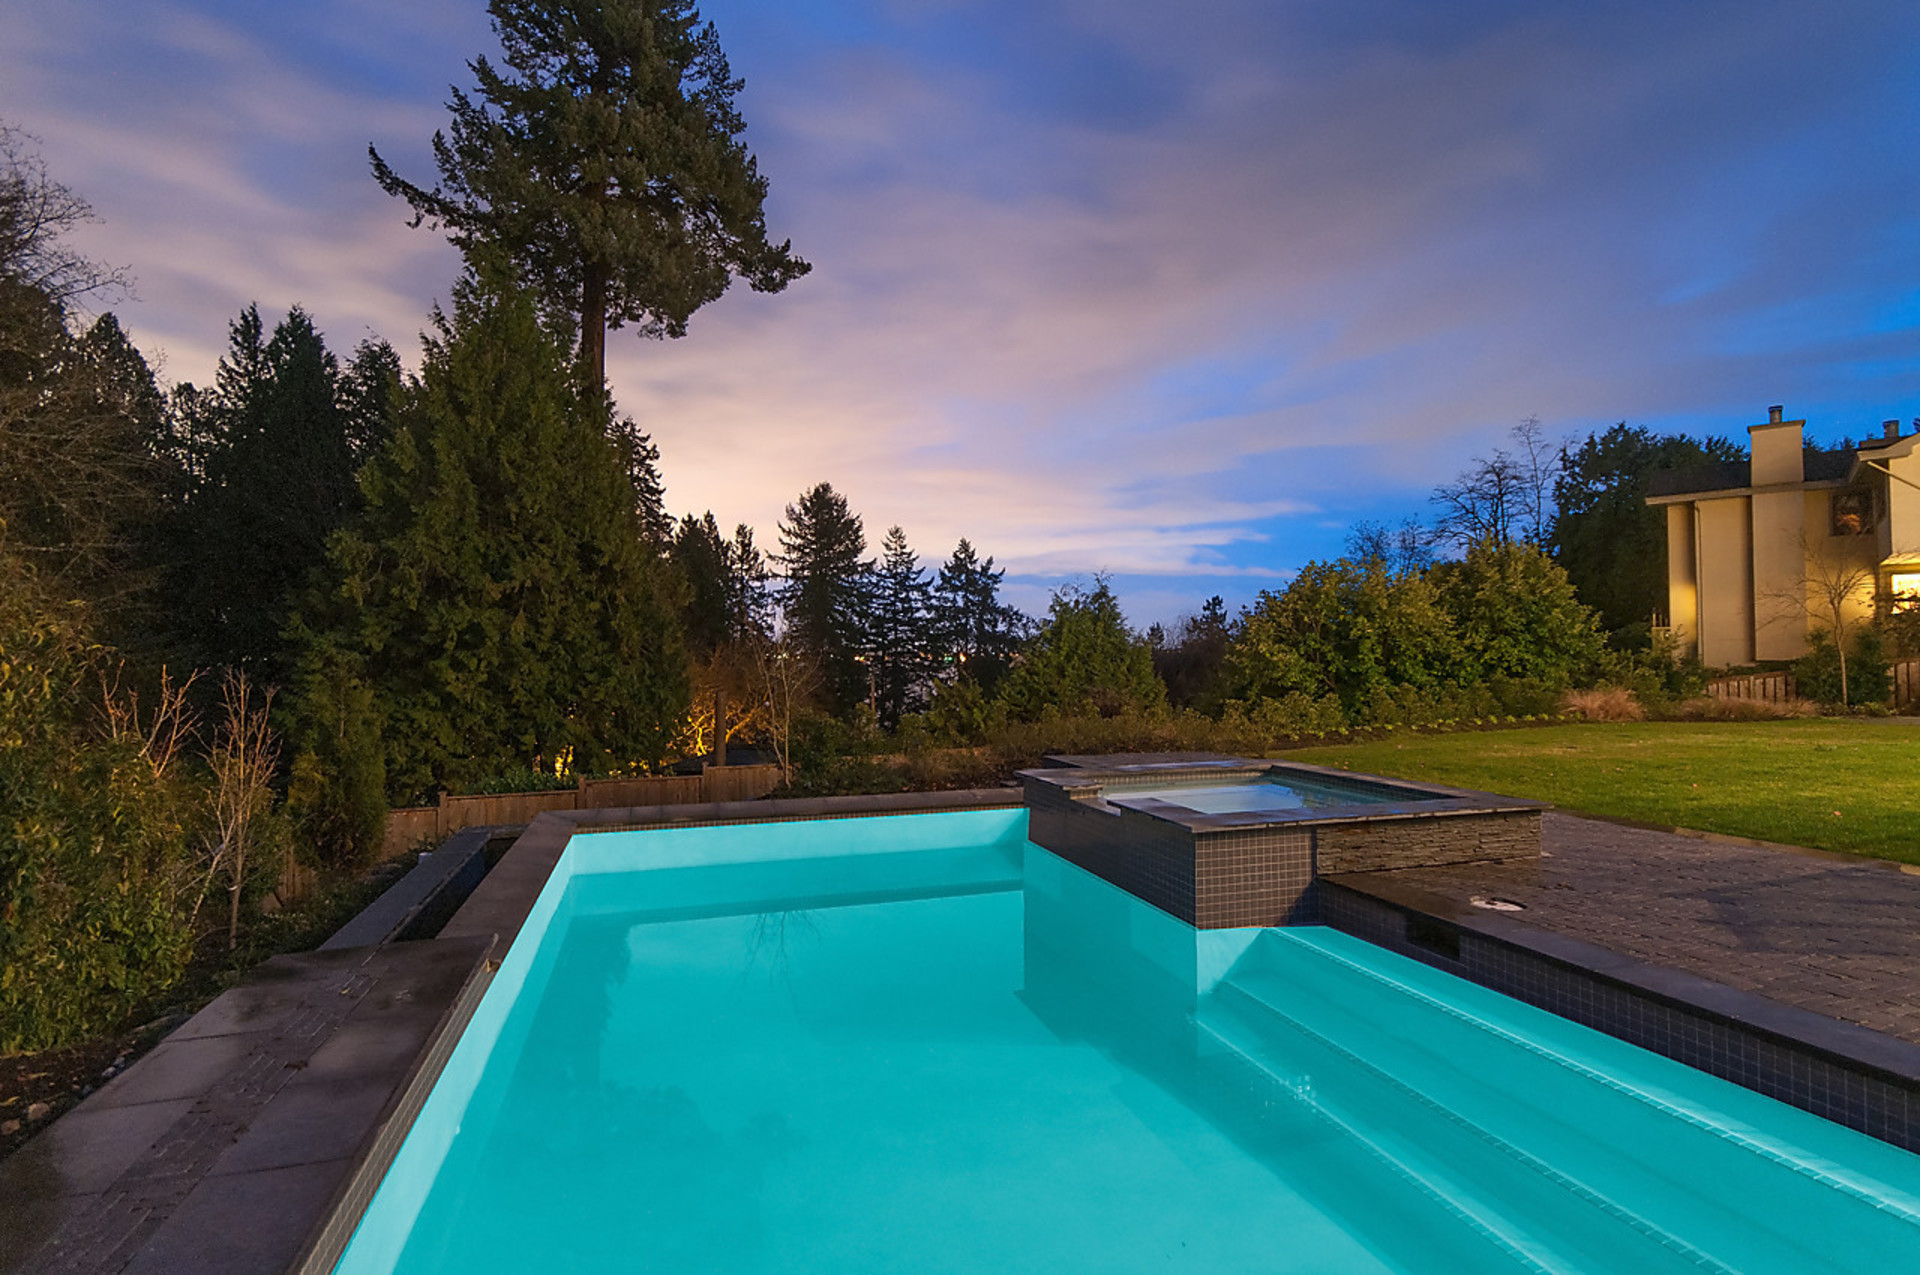 pool at 4710 Piccadilly South, Olde Caulfeild, West Vancouver